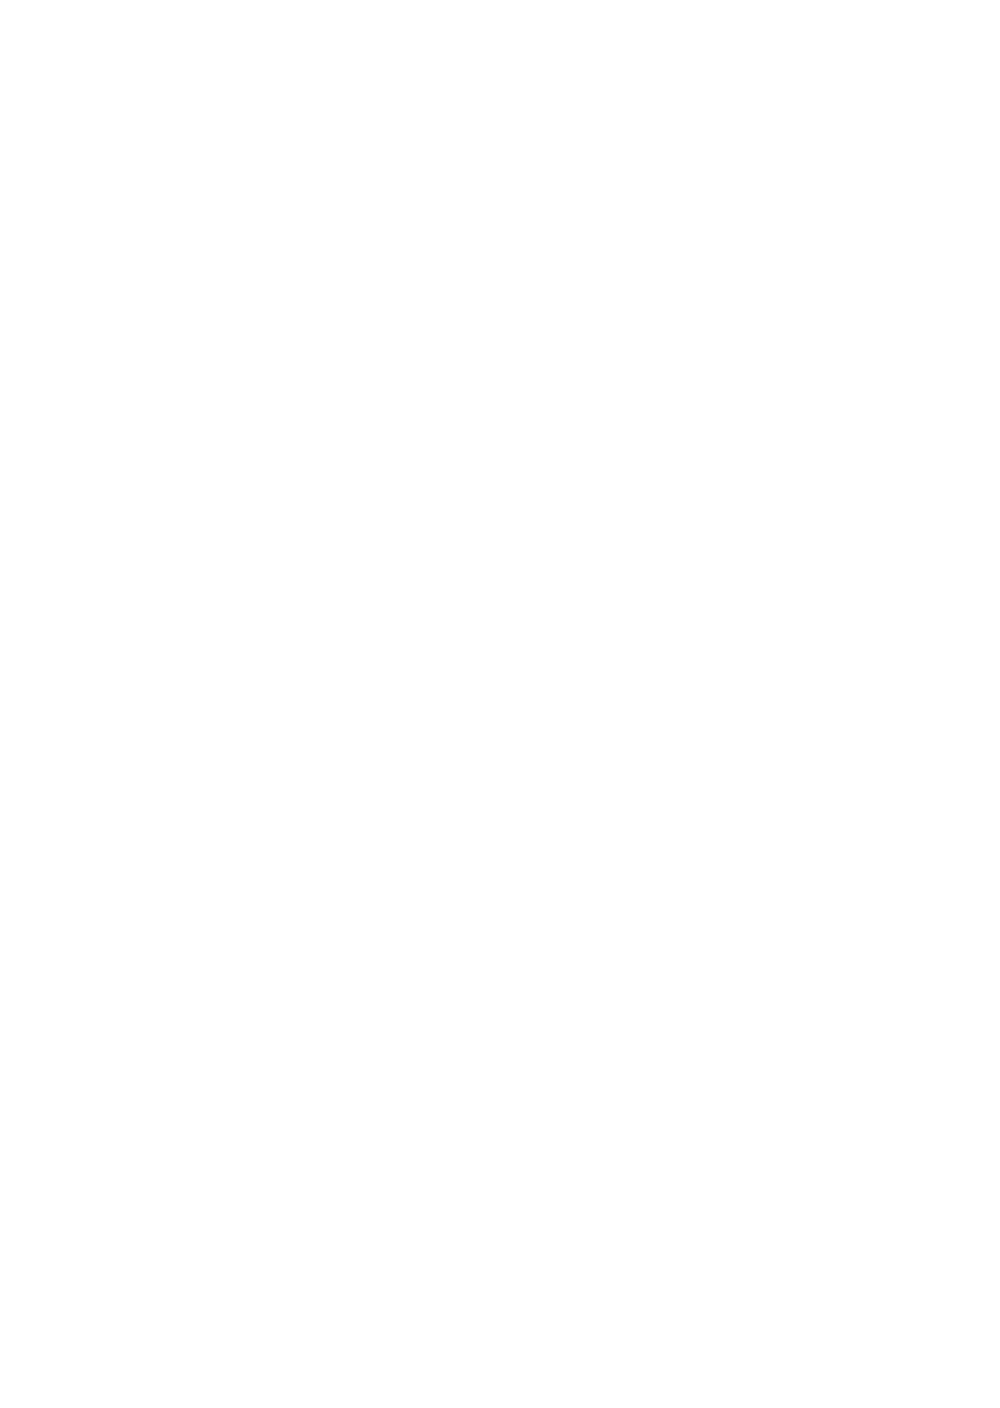 tinnitus management_circle icon white outline.png